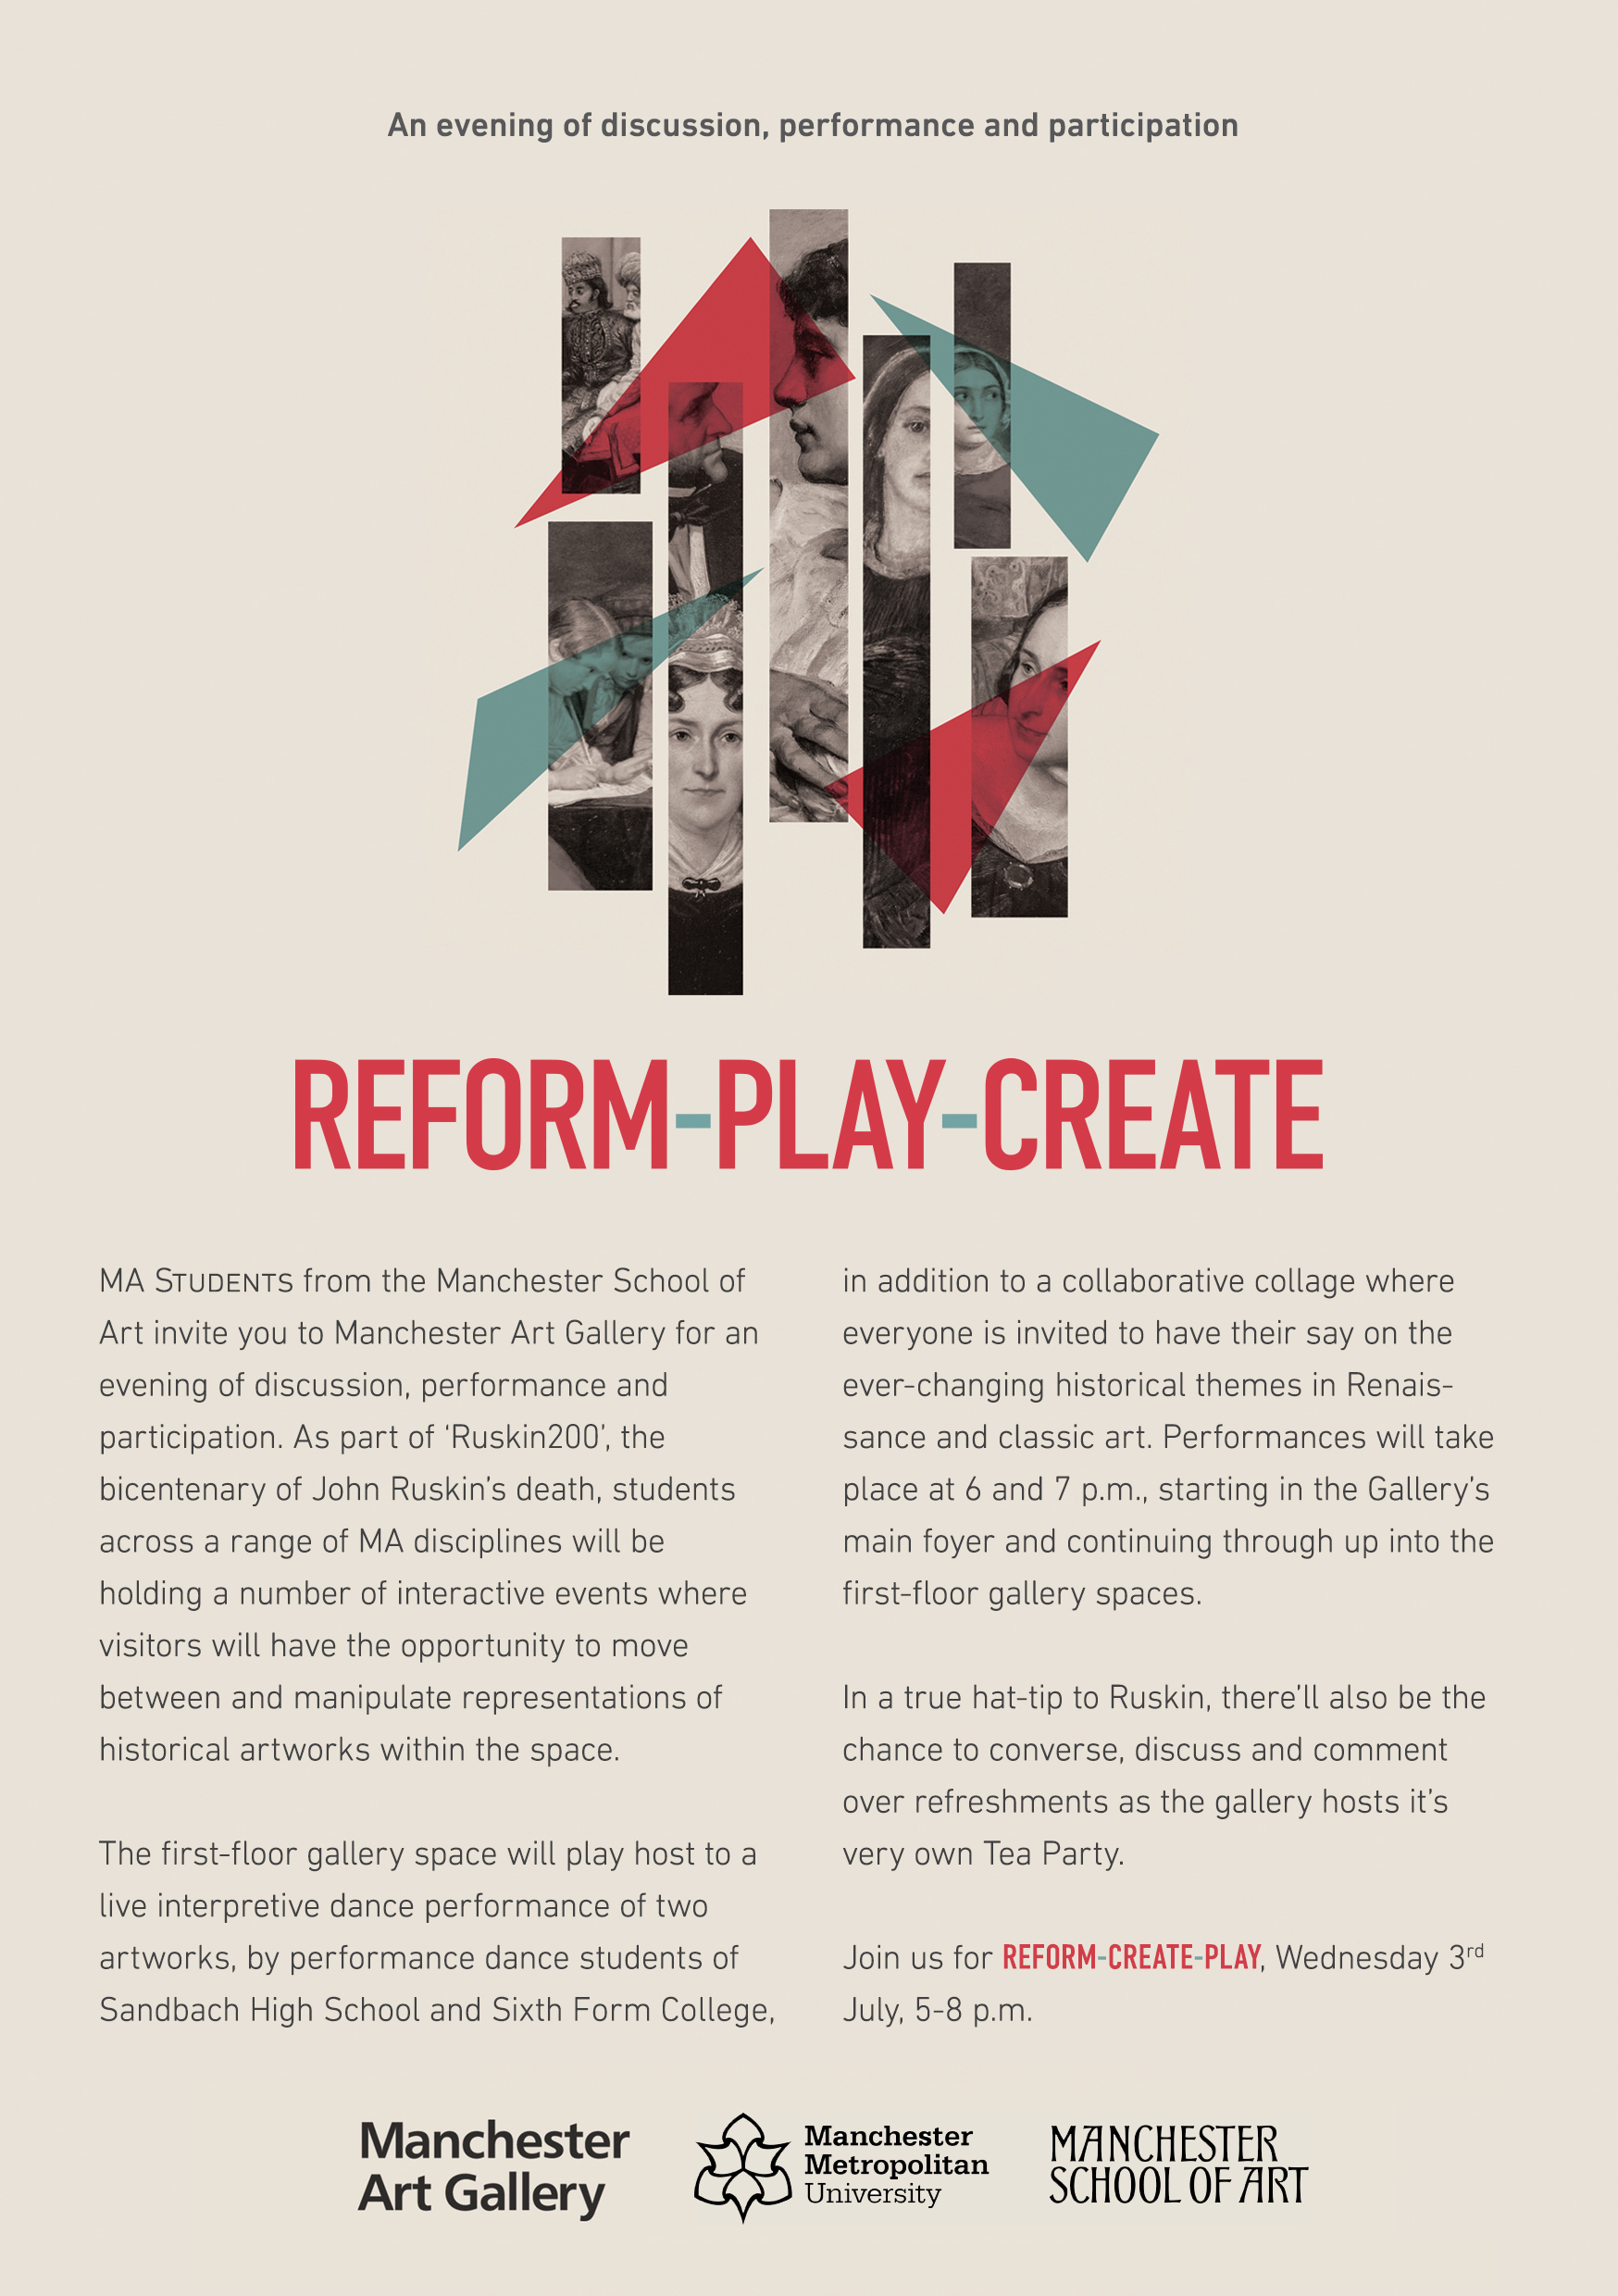 Reform Create Play MAG 0307.jpg